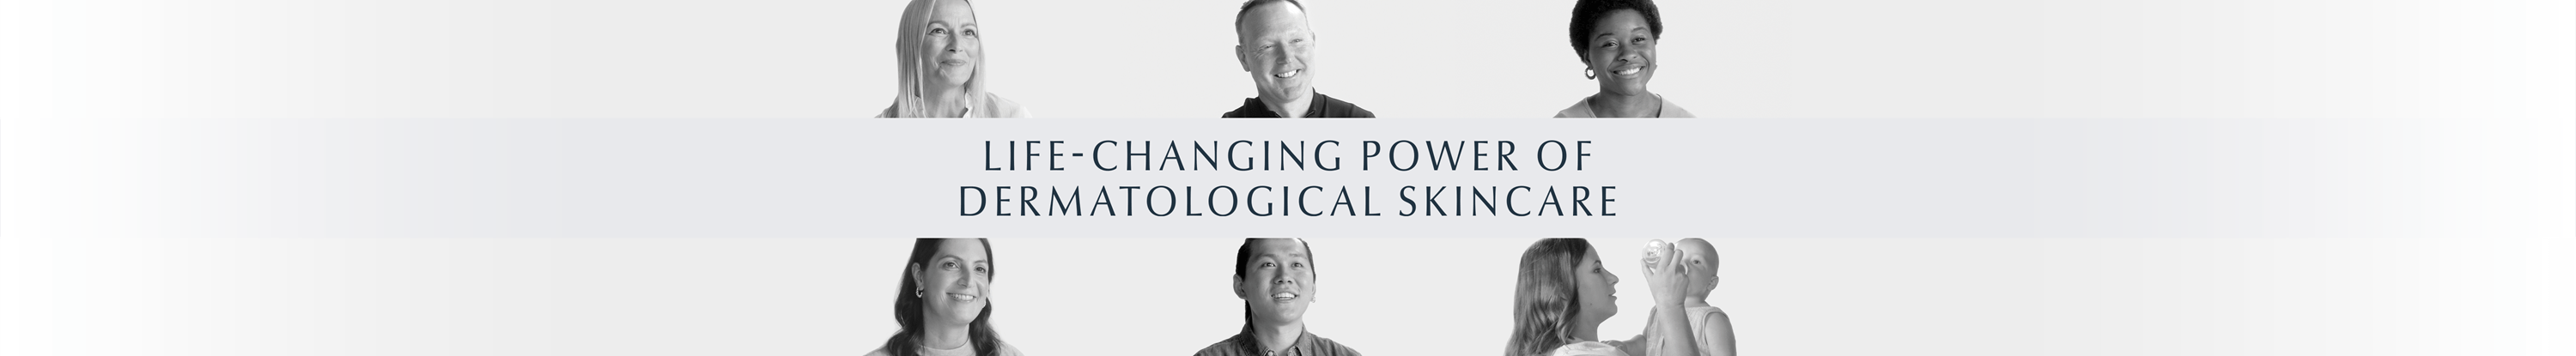 Life-changing power of dermatological skincare